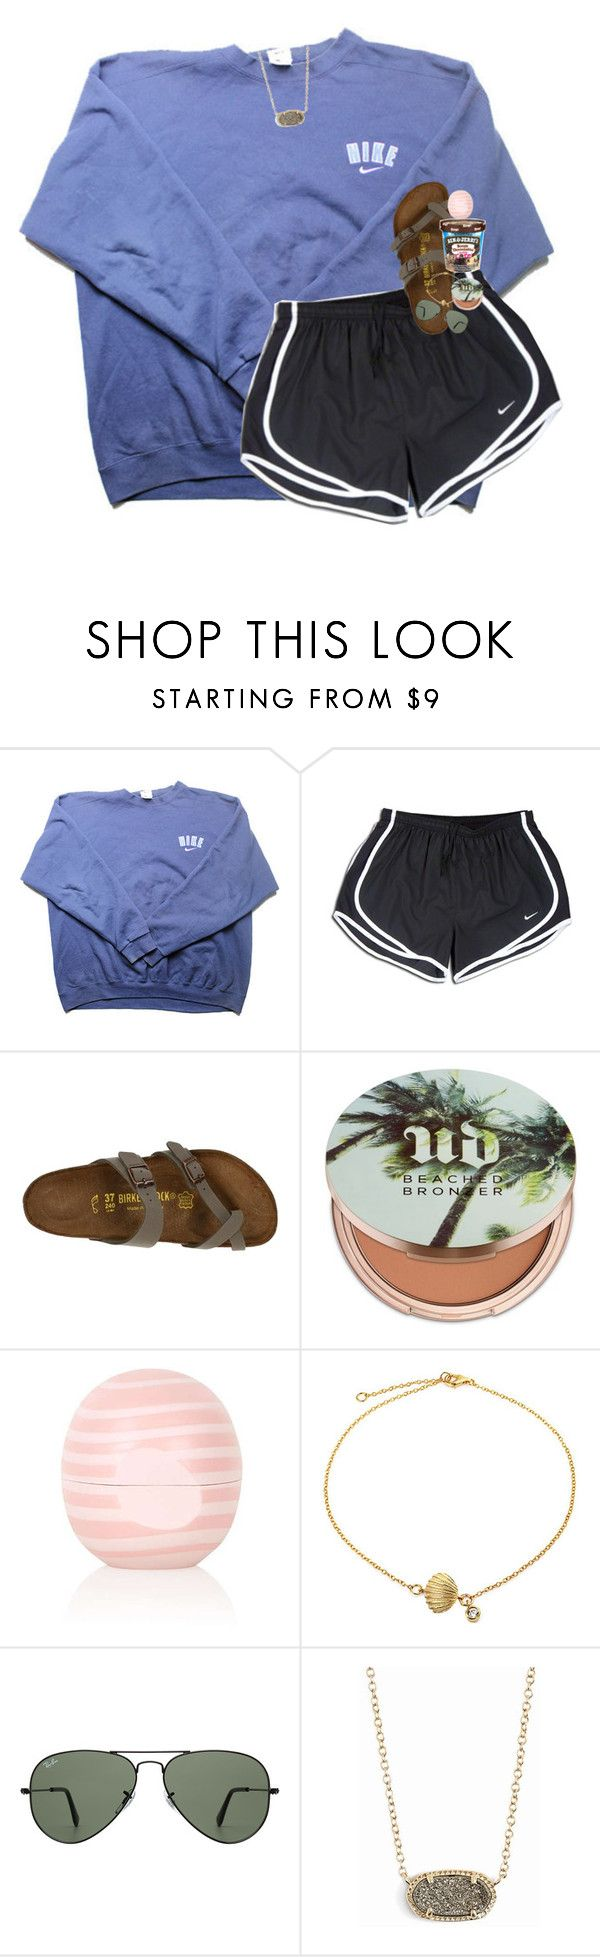 """""""rtd!!!!!"""" by lindsaygreys ❤ liked on Polyvore featuring NIKE, Birkenstock, Urban Decay, Topshop, Bling Jewelry, Ray-Ban and Kendra Scott"""